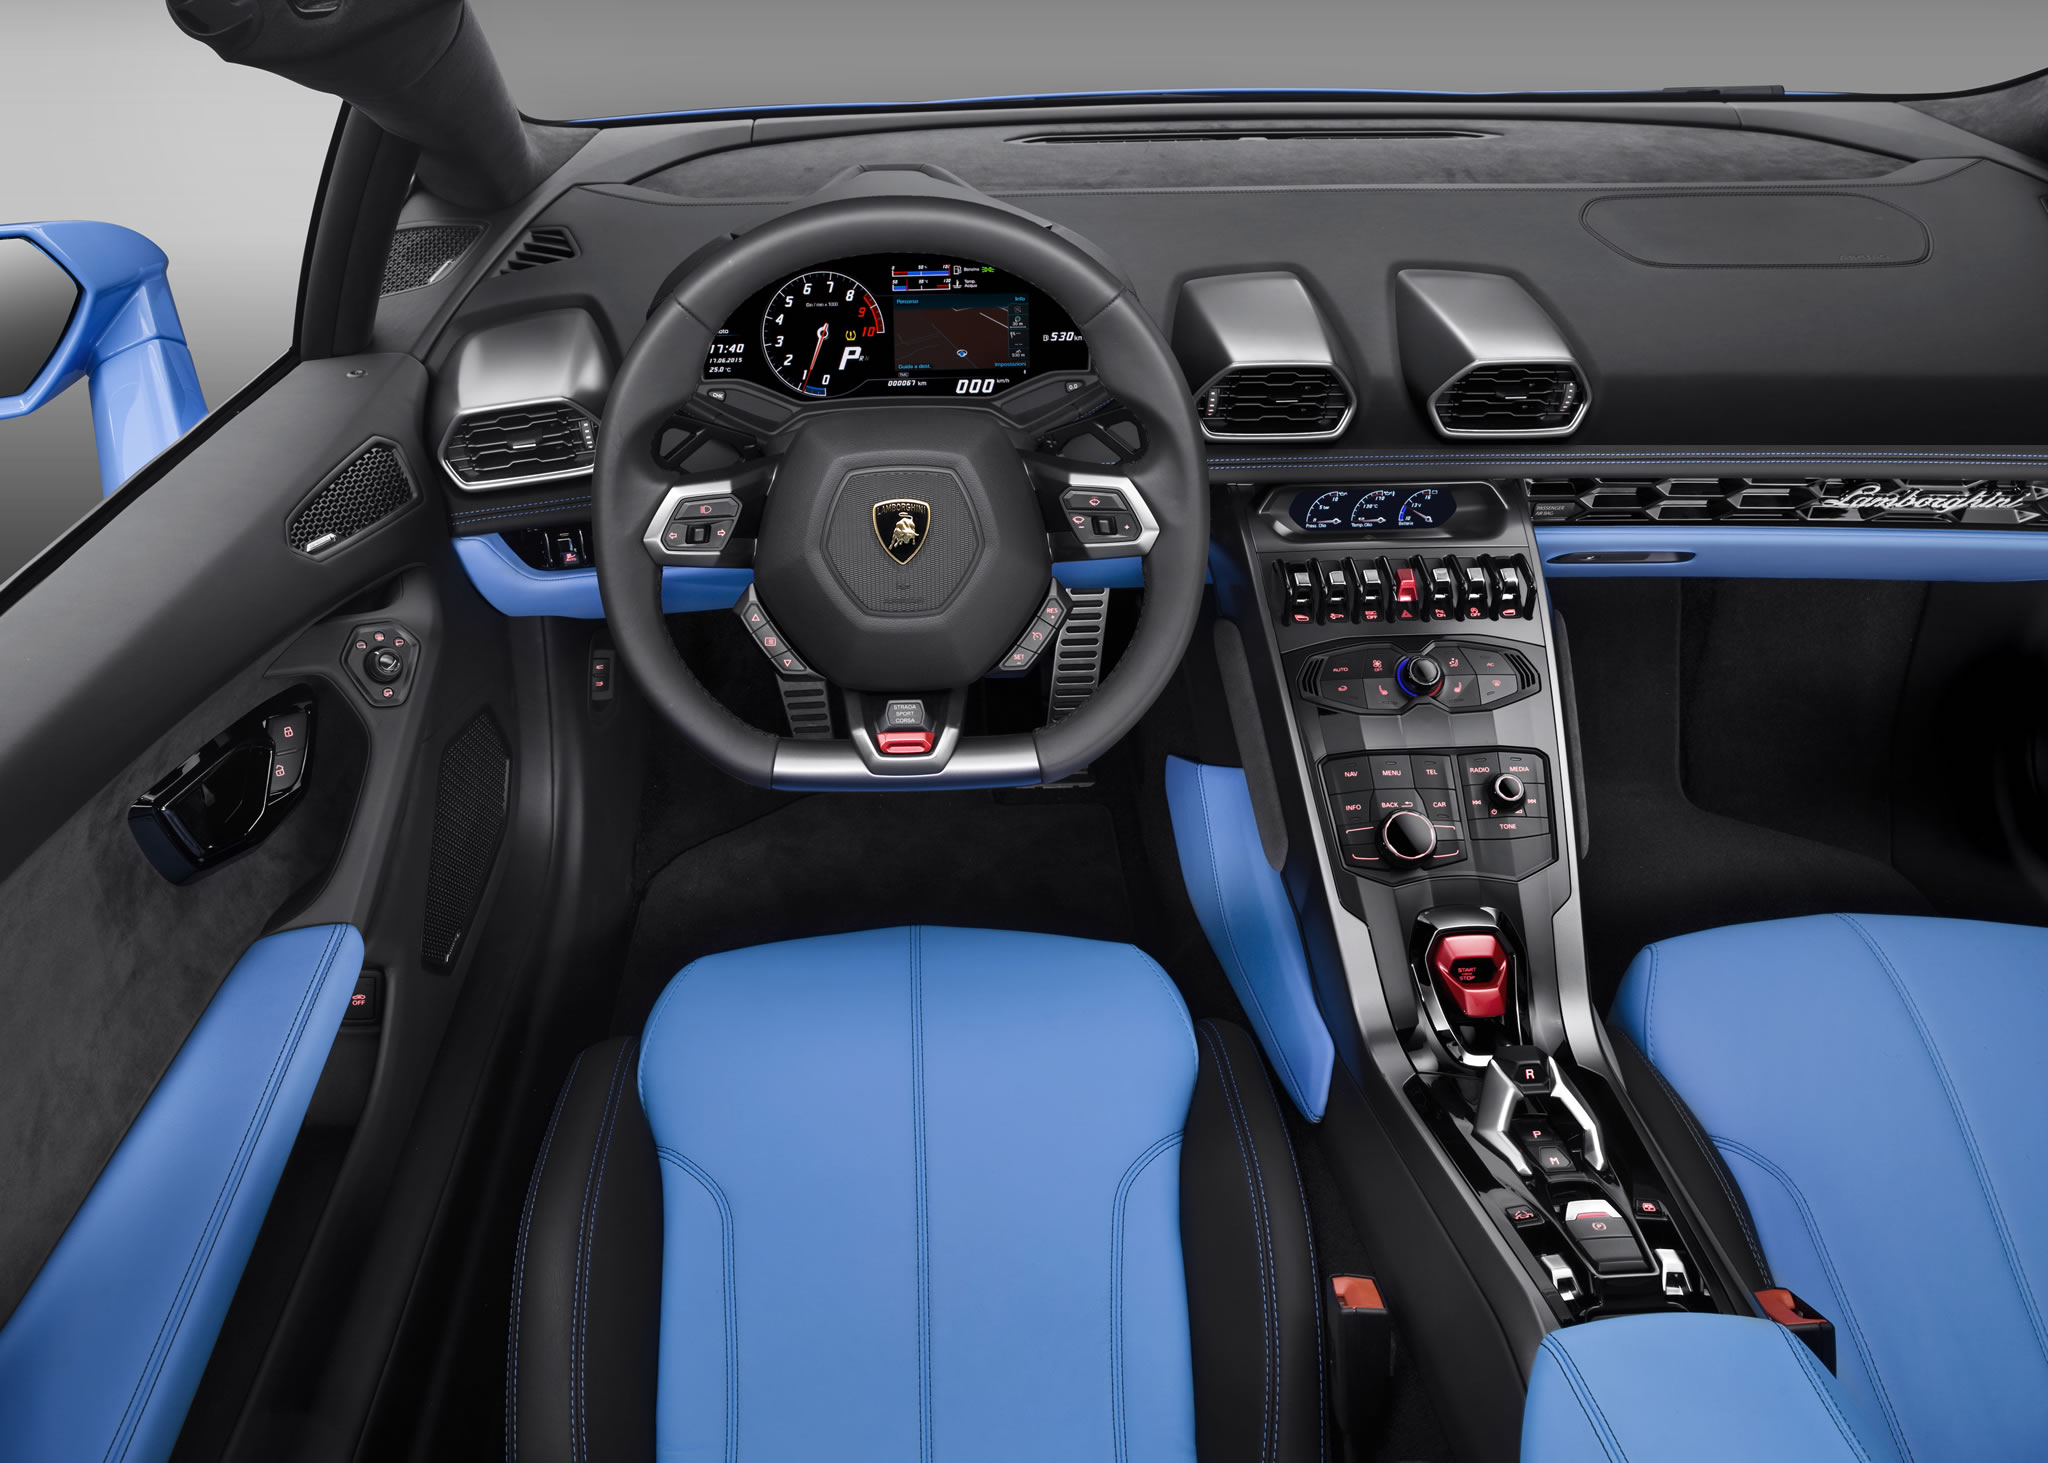 2016 lamborghini huracan lp610 4 spyder interior photo steering wheel das. Black Bedroom Furniture Sets. Home Design Ideas